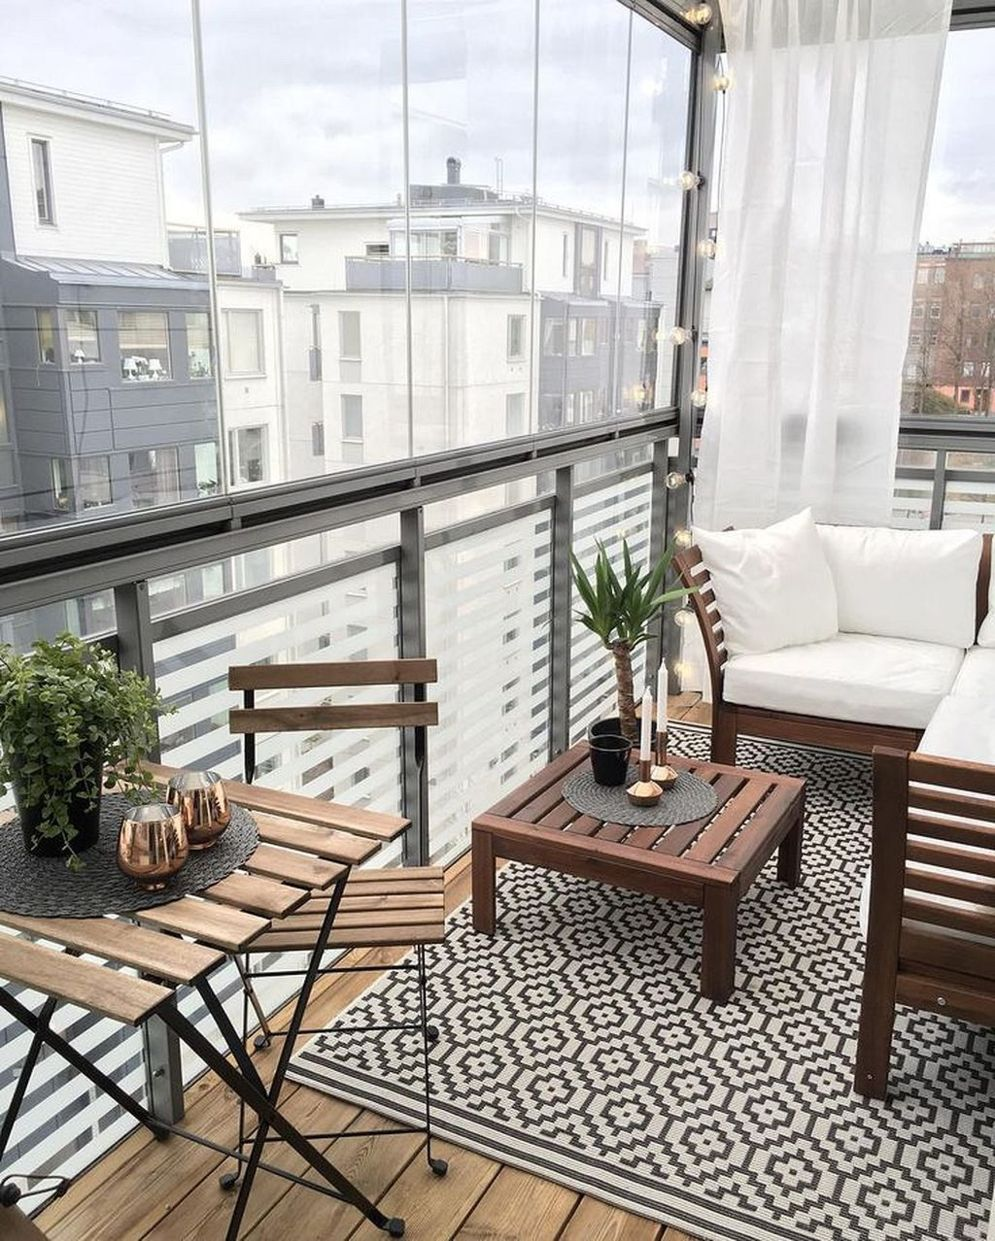 Brilliant apartment balcony ideas converted into cozy living space Image 13